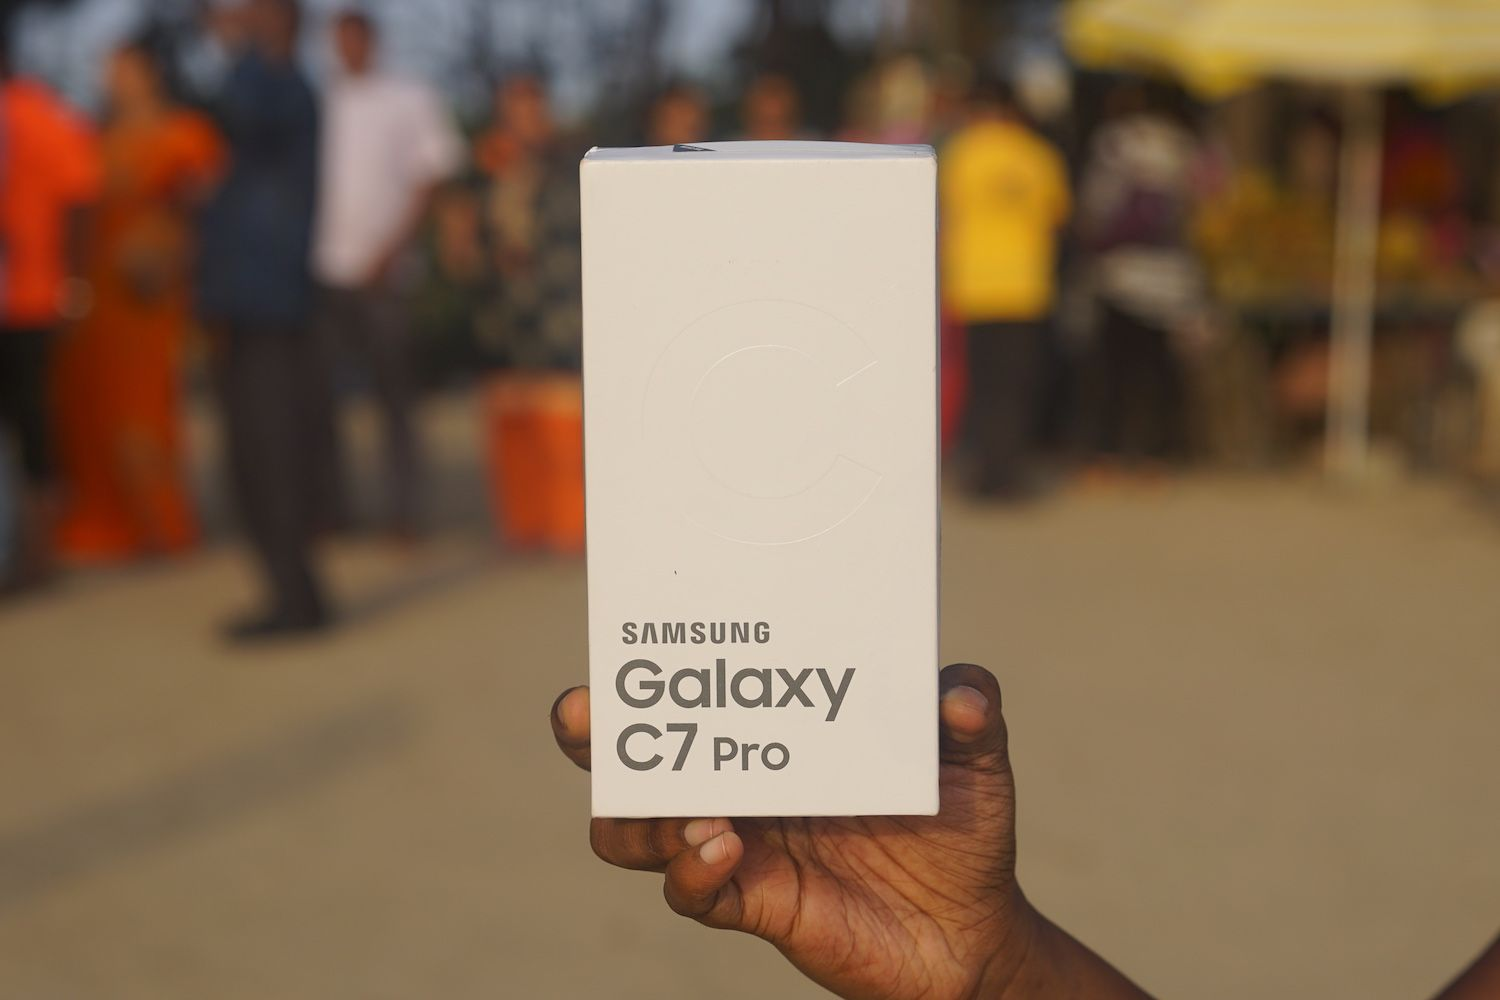 Samsung Galaxy C7 Pro Review: An excellent all-rounder that needs a price  cut - MySmartPrice